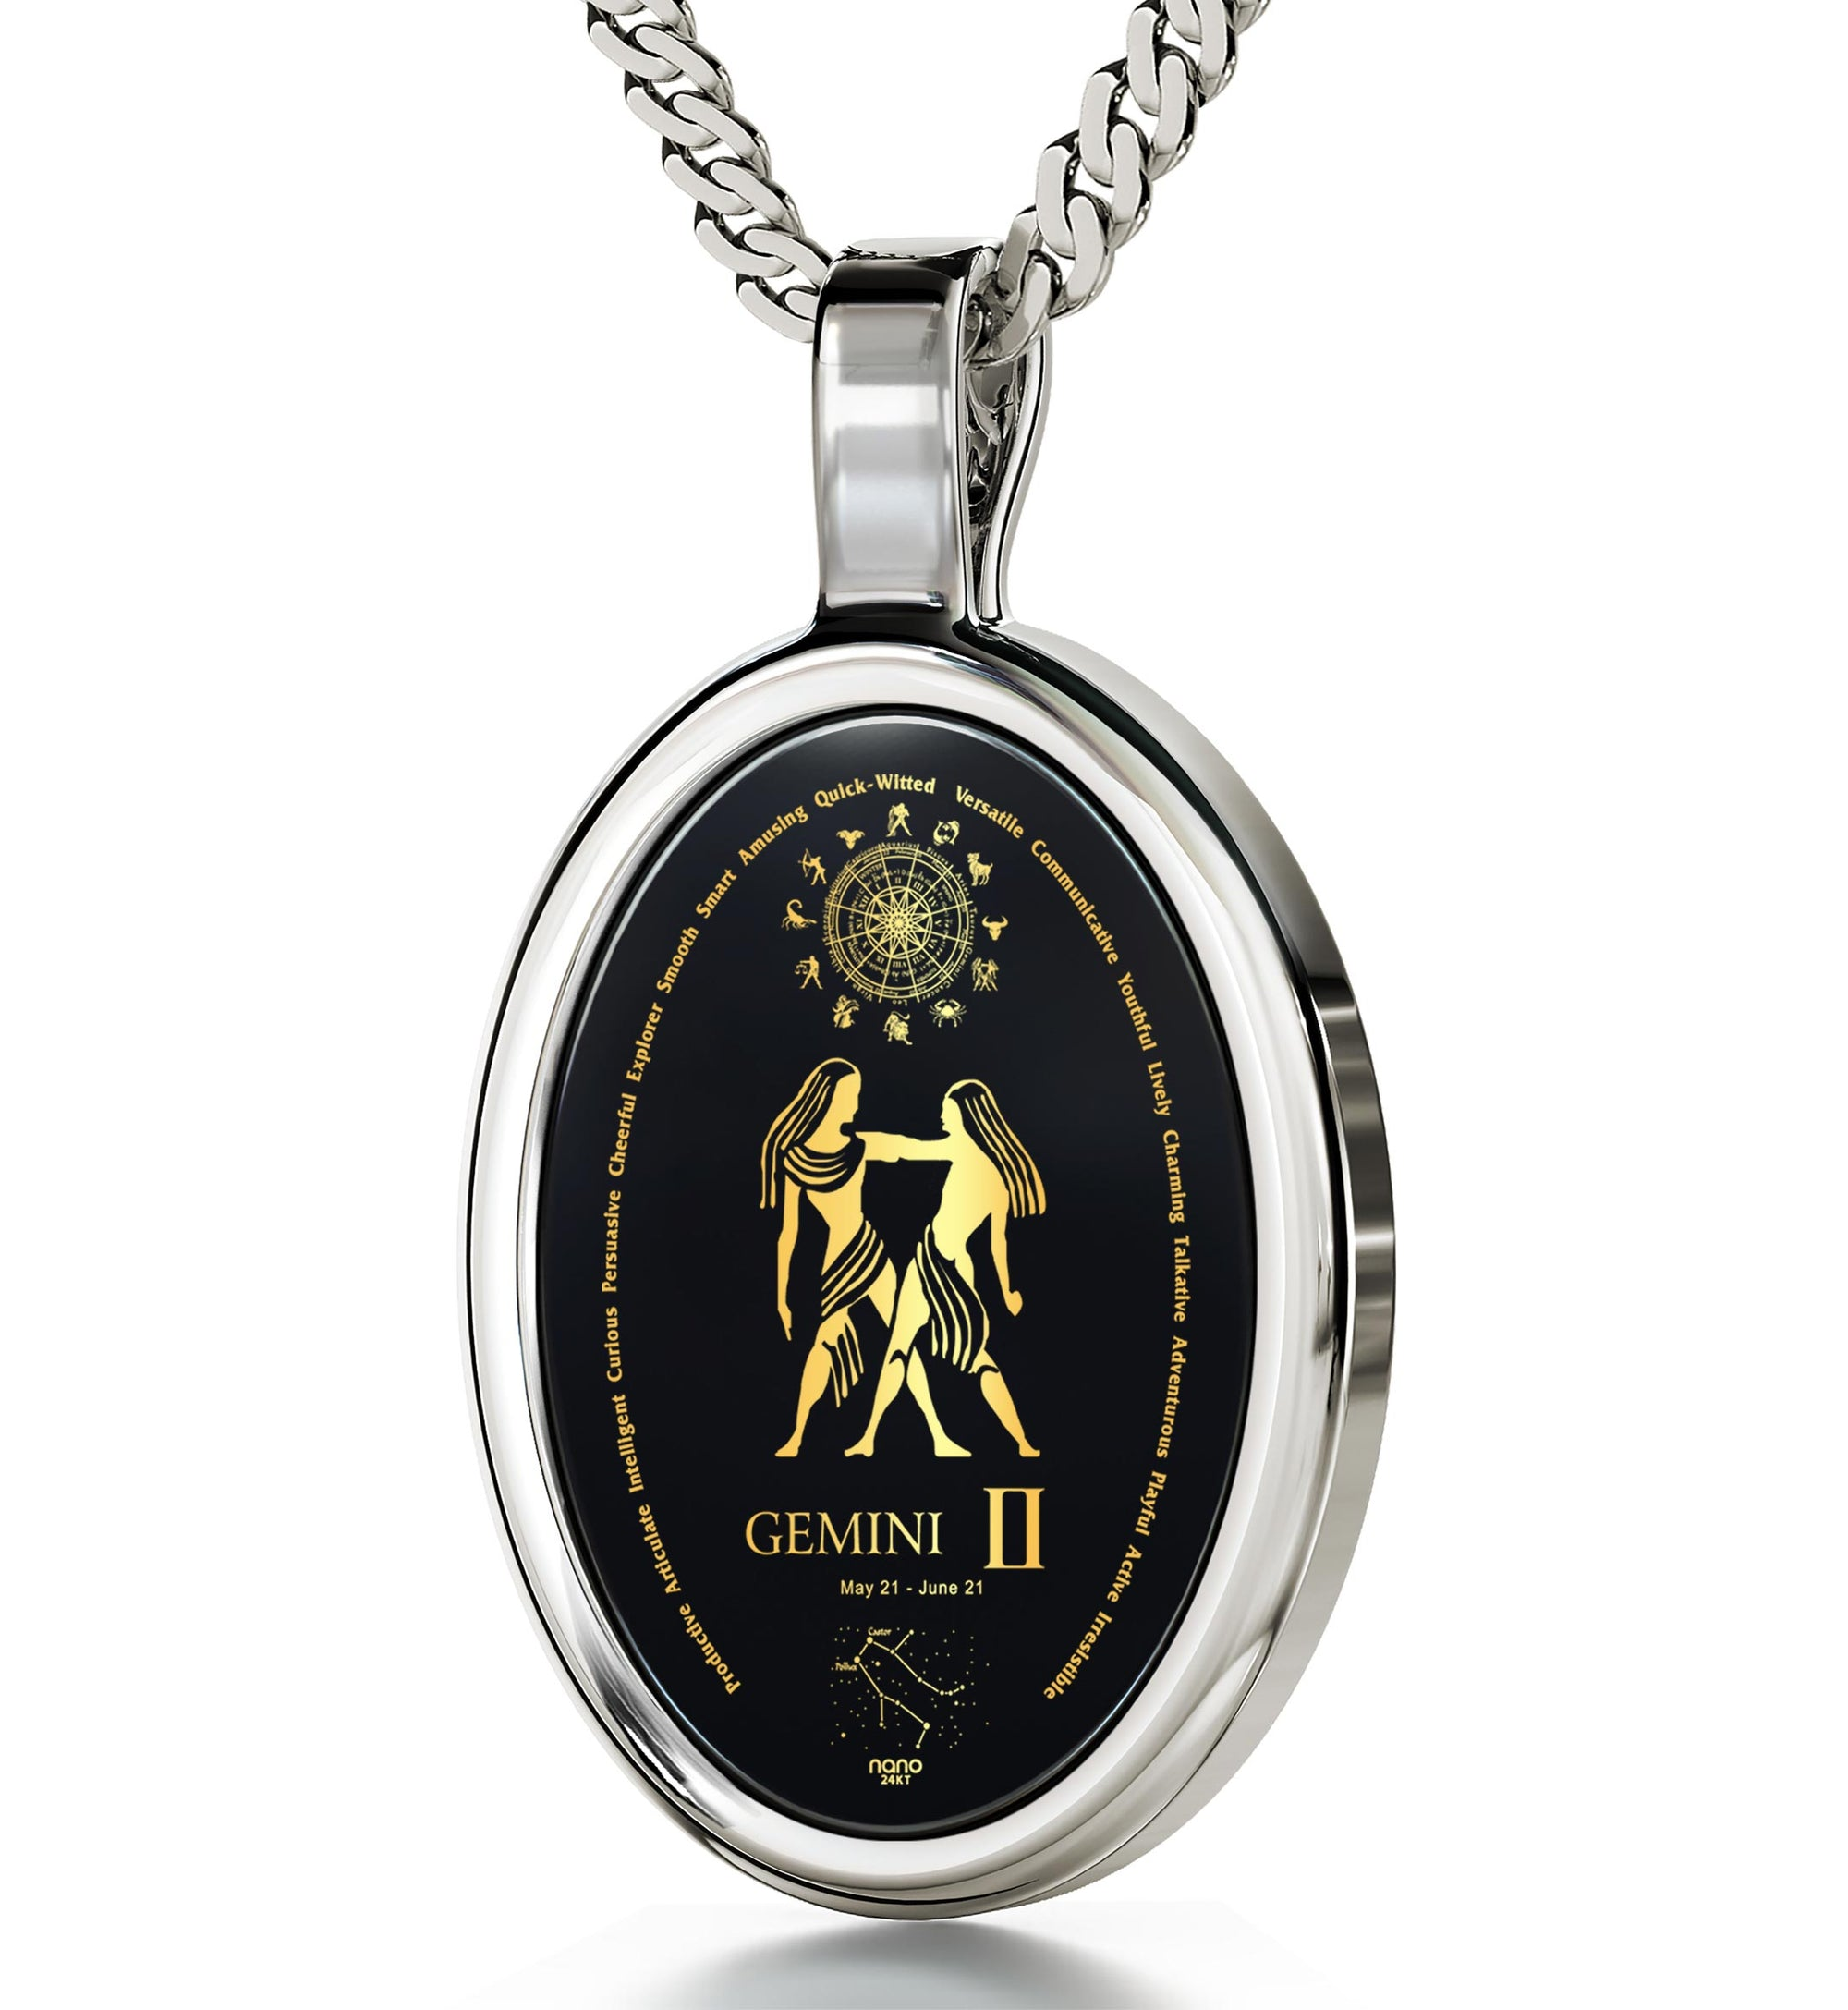 model models printable print jewelry cgtrader stl gemini pendants pendant